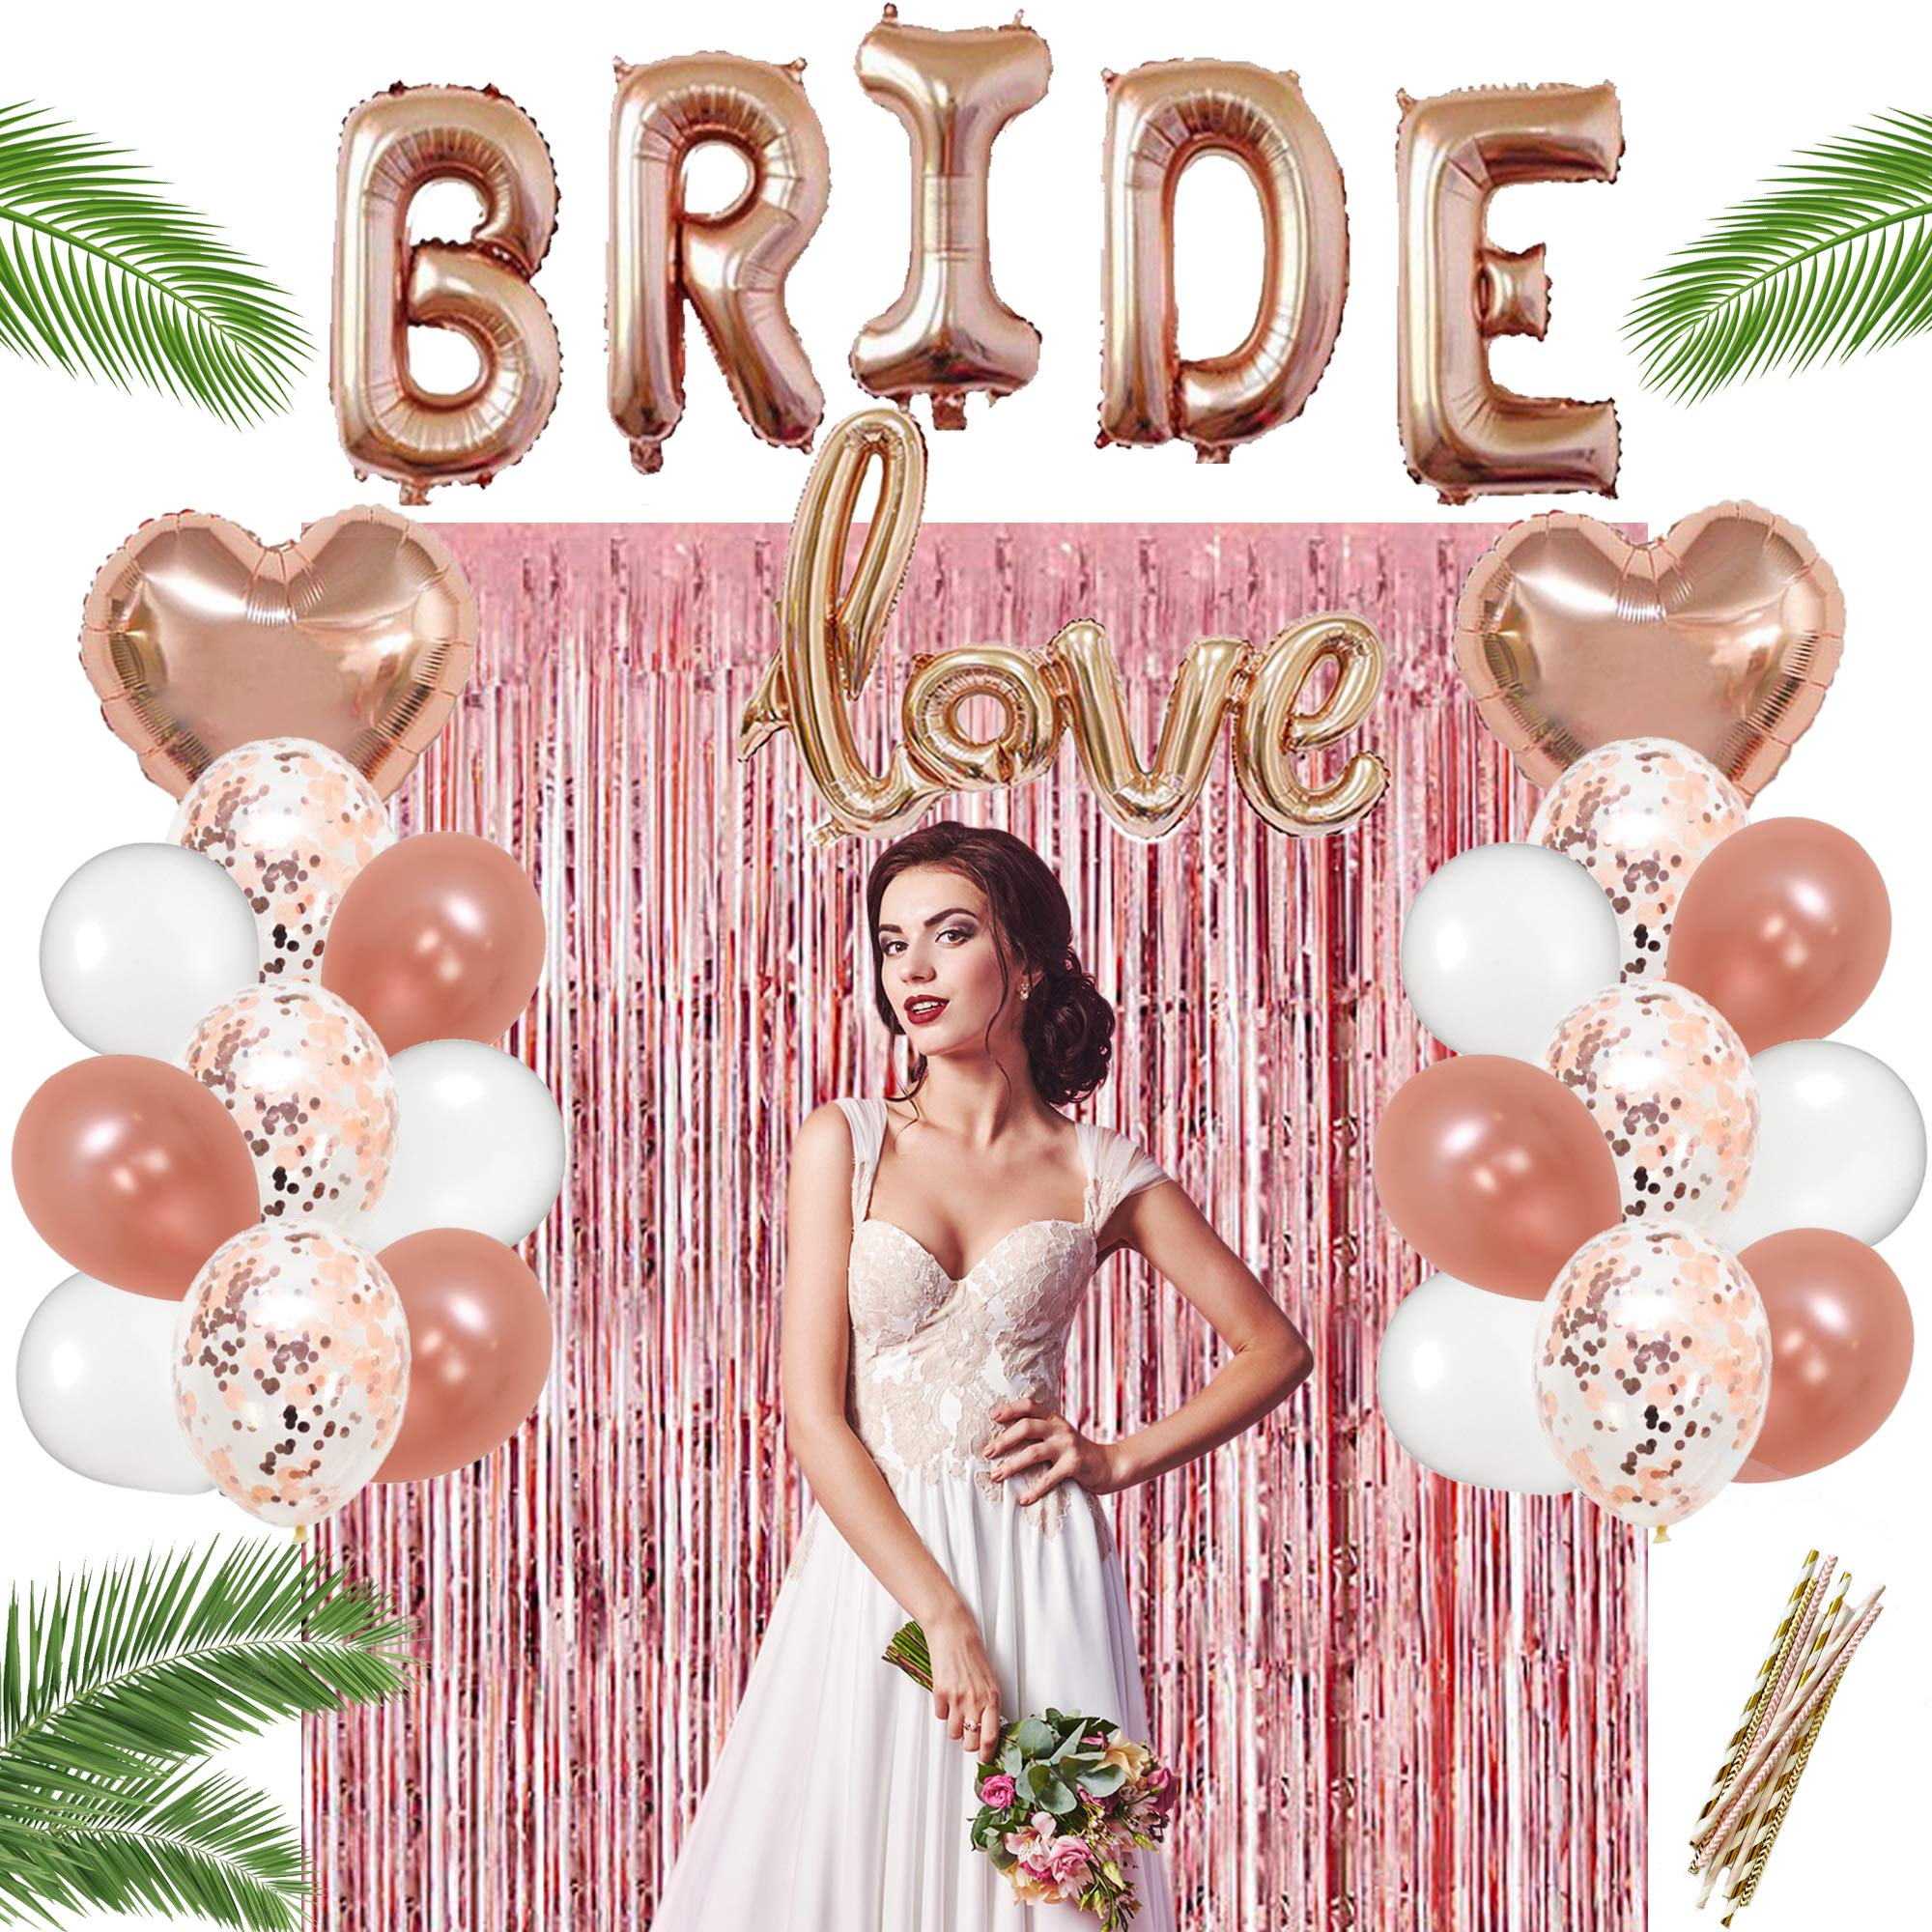 Bachelorette Party Decorations kit Rose Gold Bridal Shower Decoration Supplies Includes Fringe Curtain, 20 Balloons Include 2 Heart & 6 Confetti Balloons & Gold Paper Straws, a Complete Decor Set.